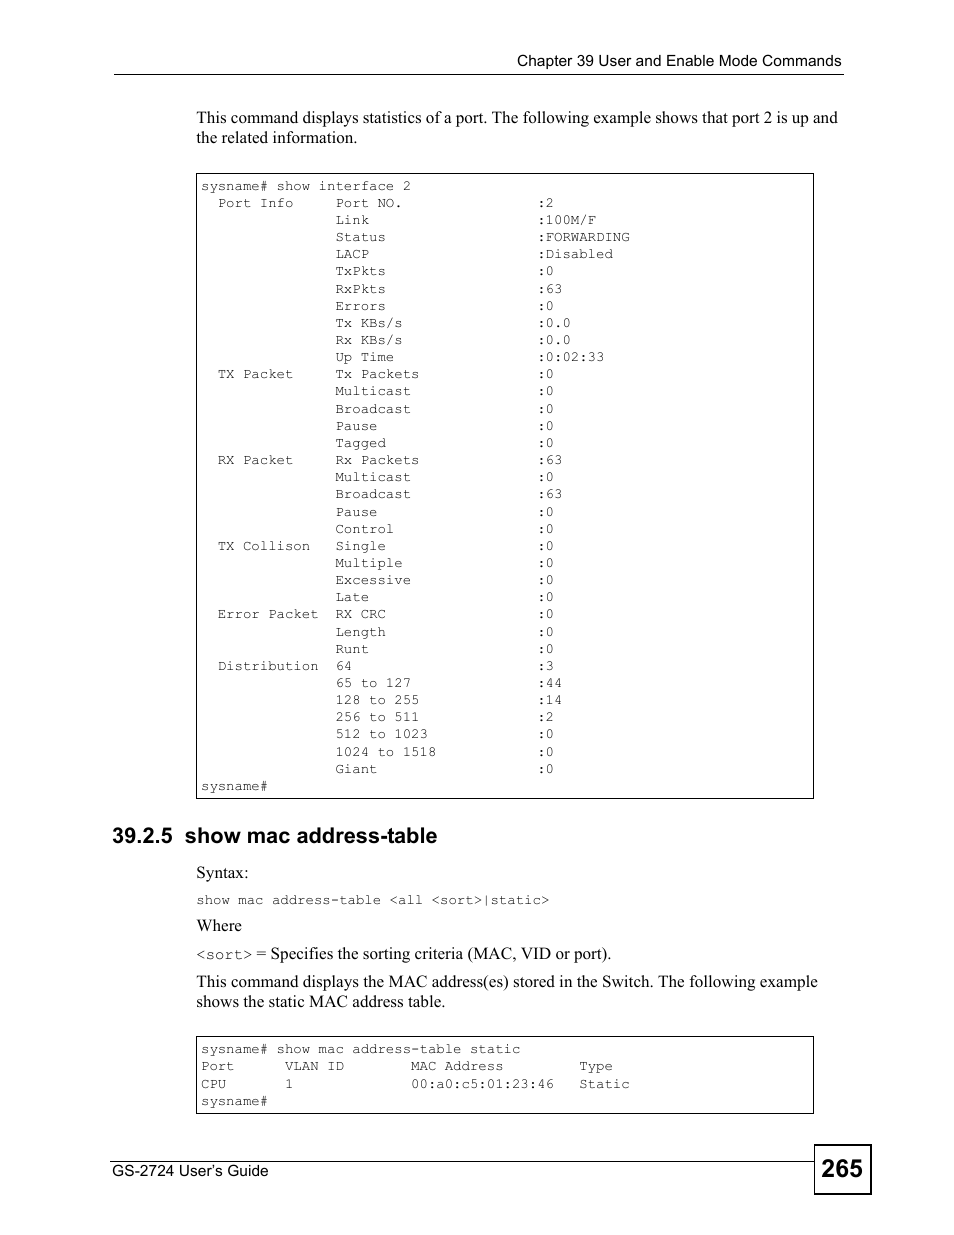 5 show mac address-table | ZyXEL Communications GS-2724 User Manual